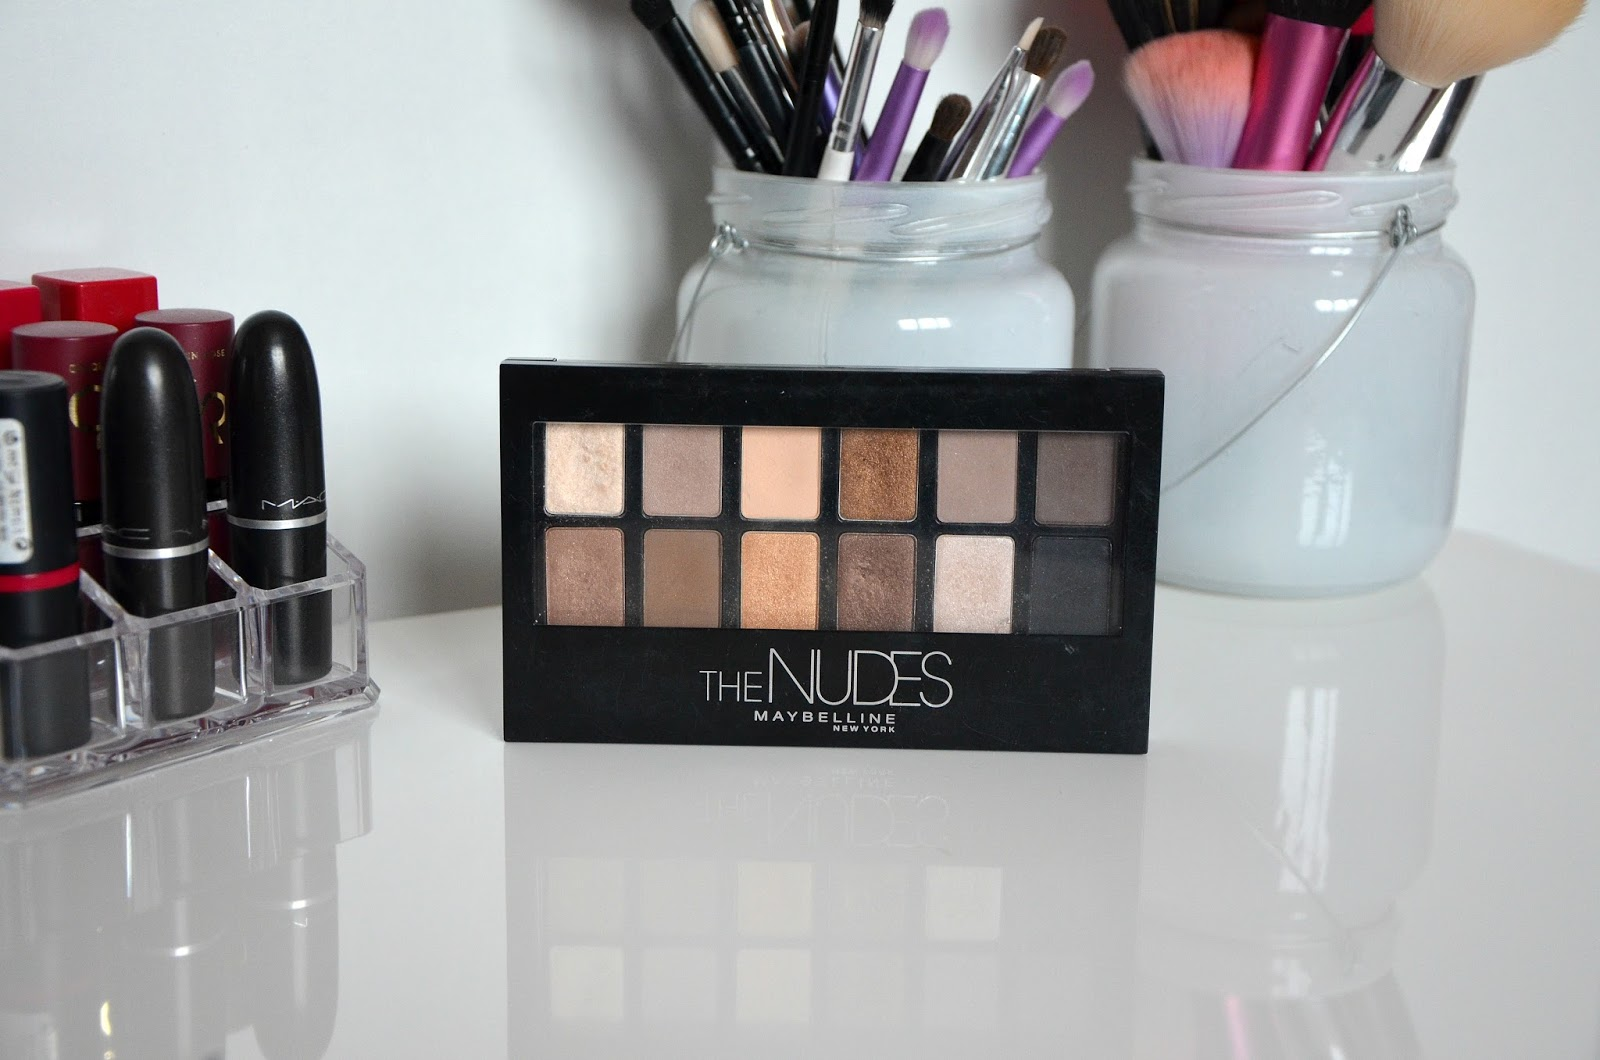 The Nudes Maybelline New York